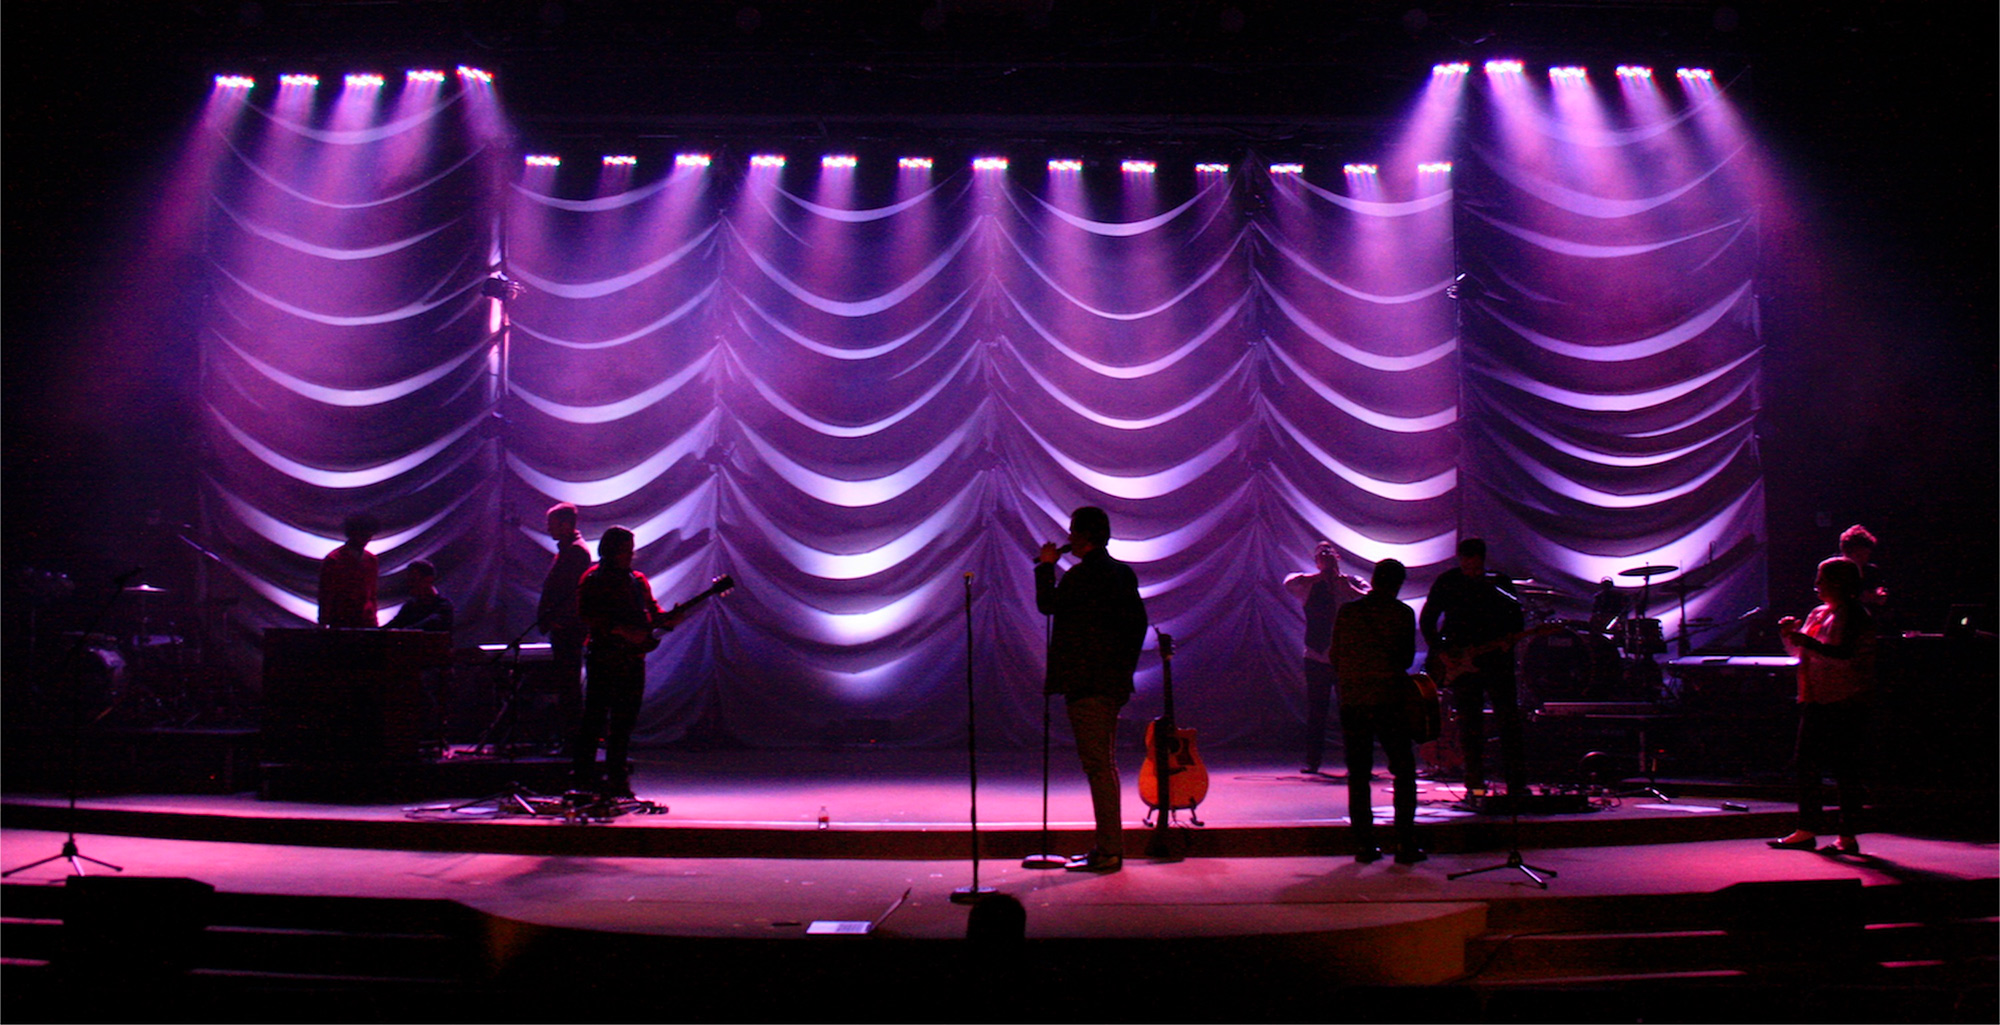 Church Stage Design Ideas Rippling Background Church Stage Design Ideas